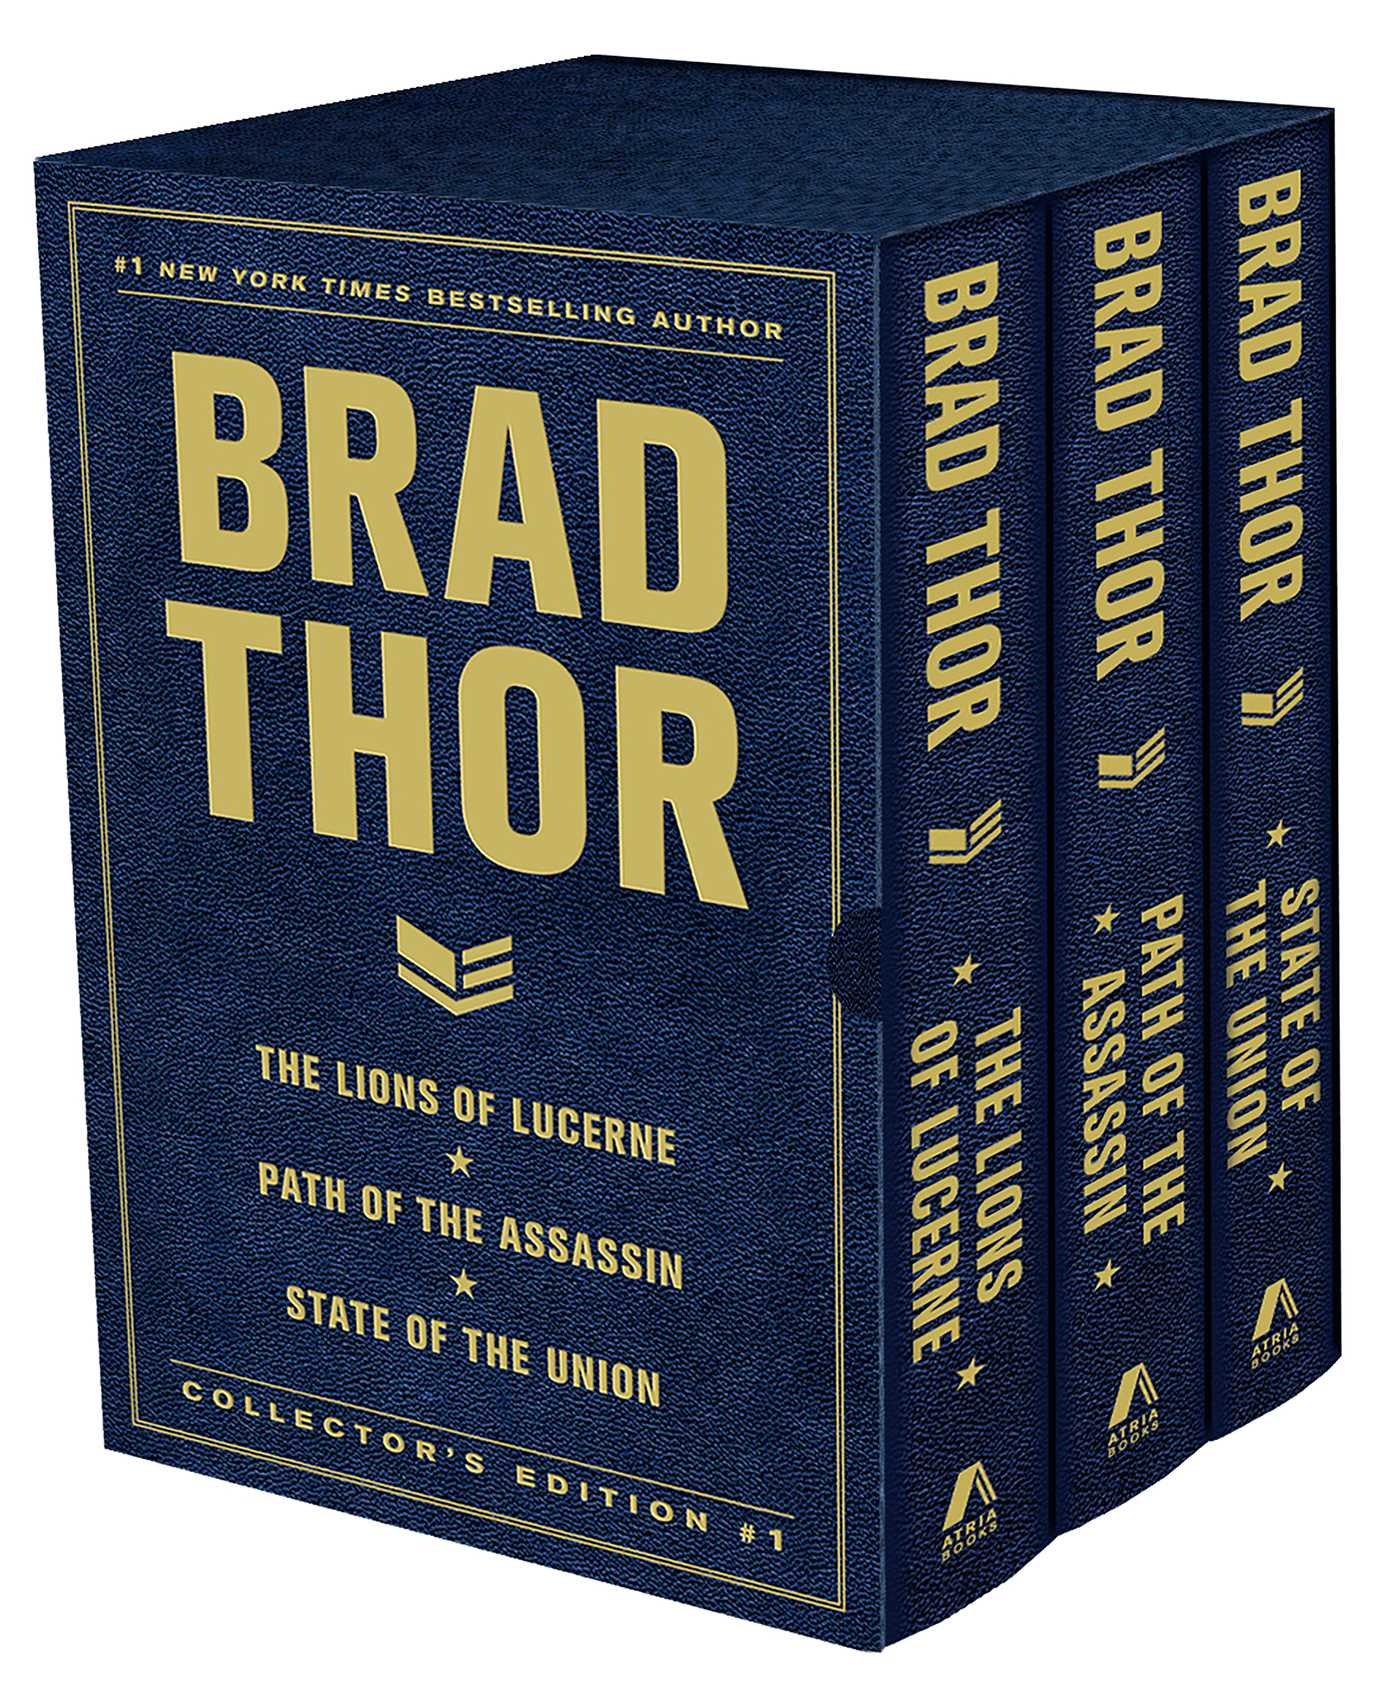 Brad-thor-collectors-edition-1-9781476773582_hr